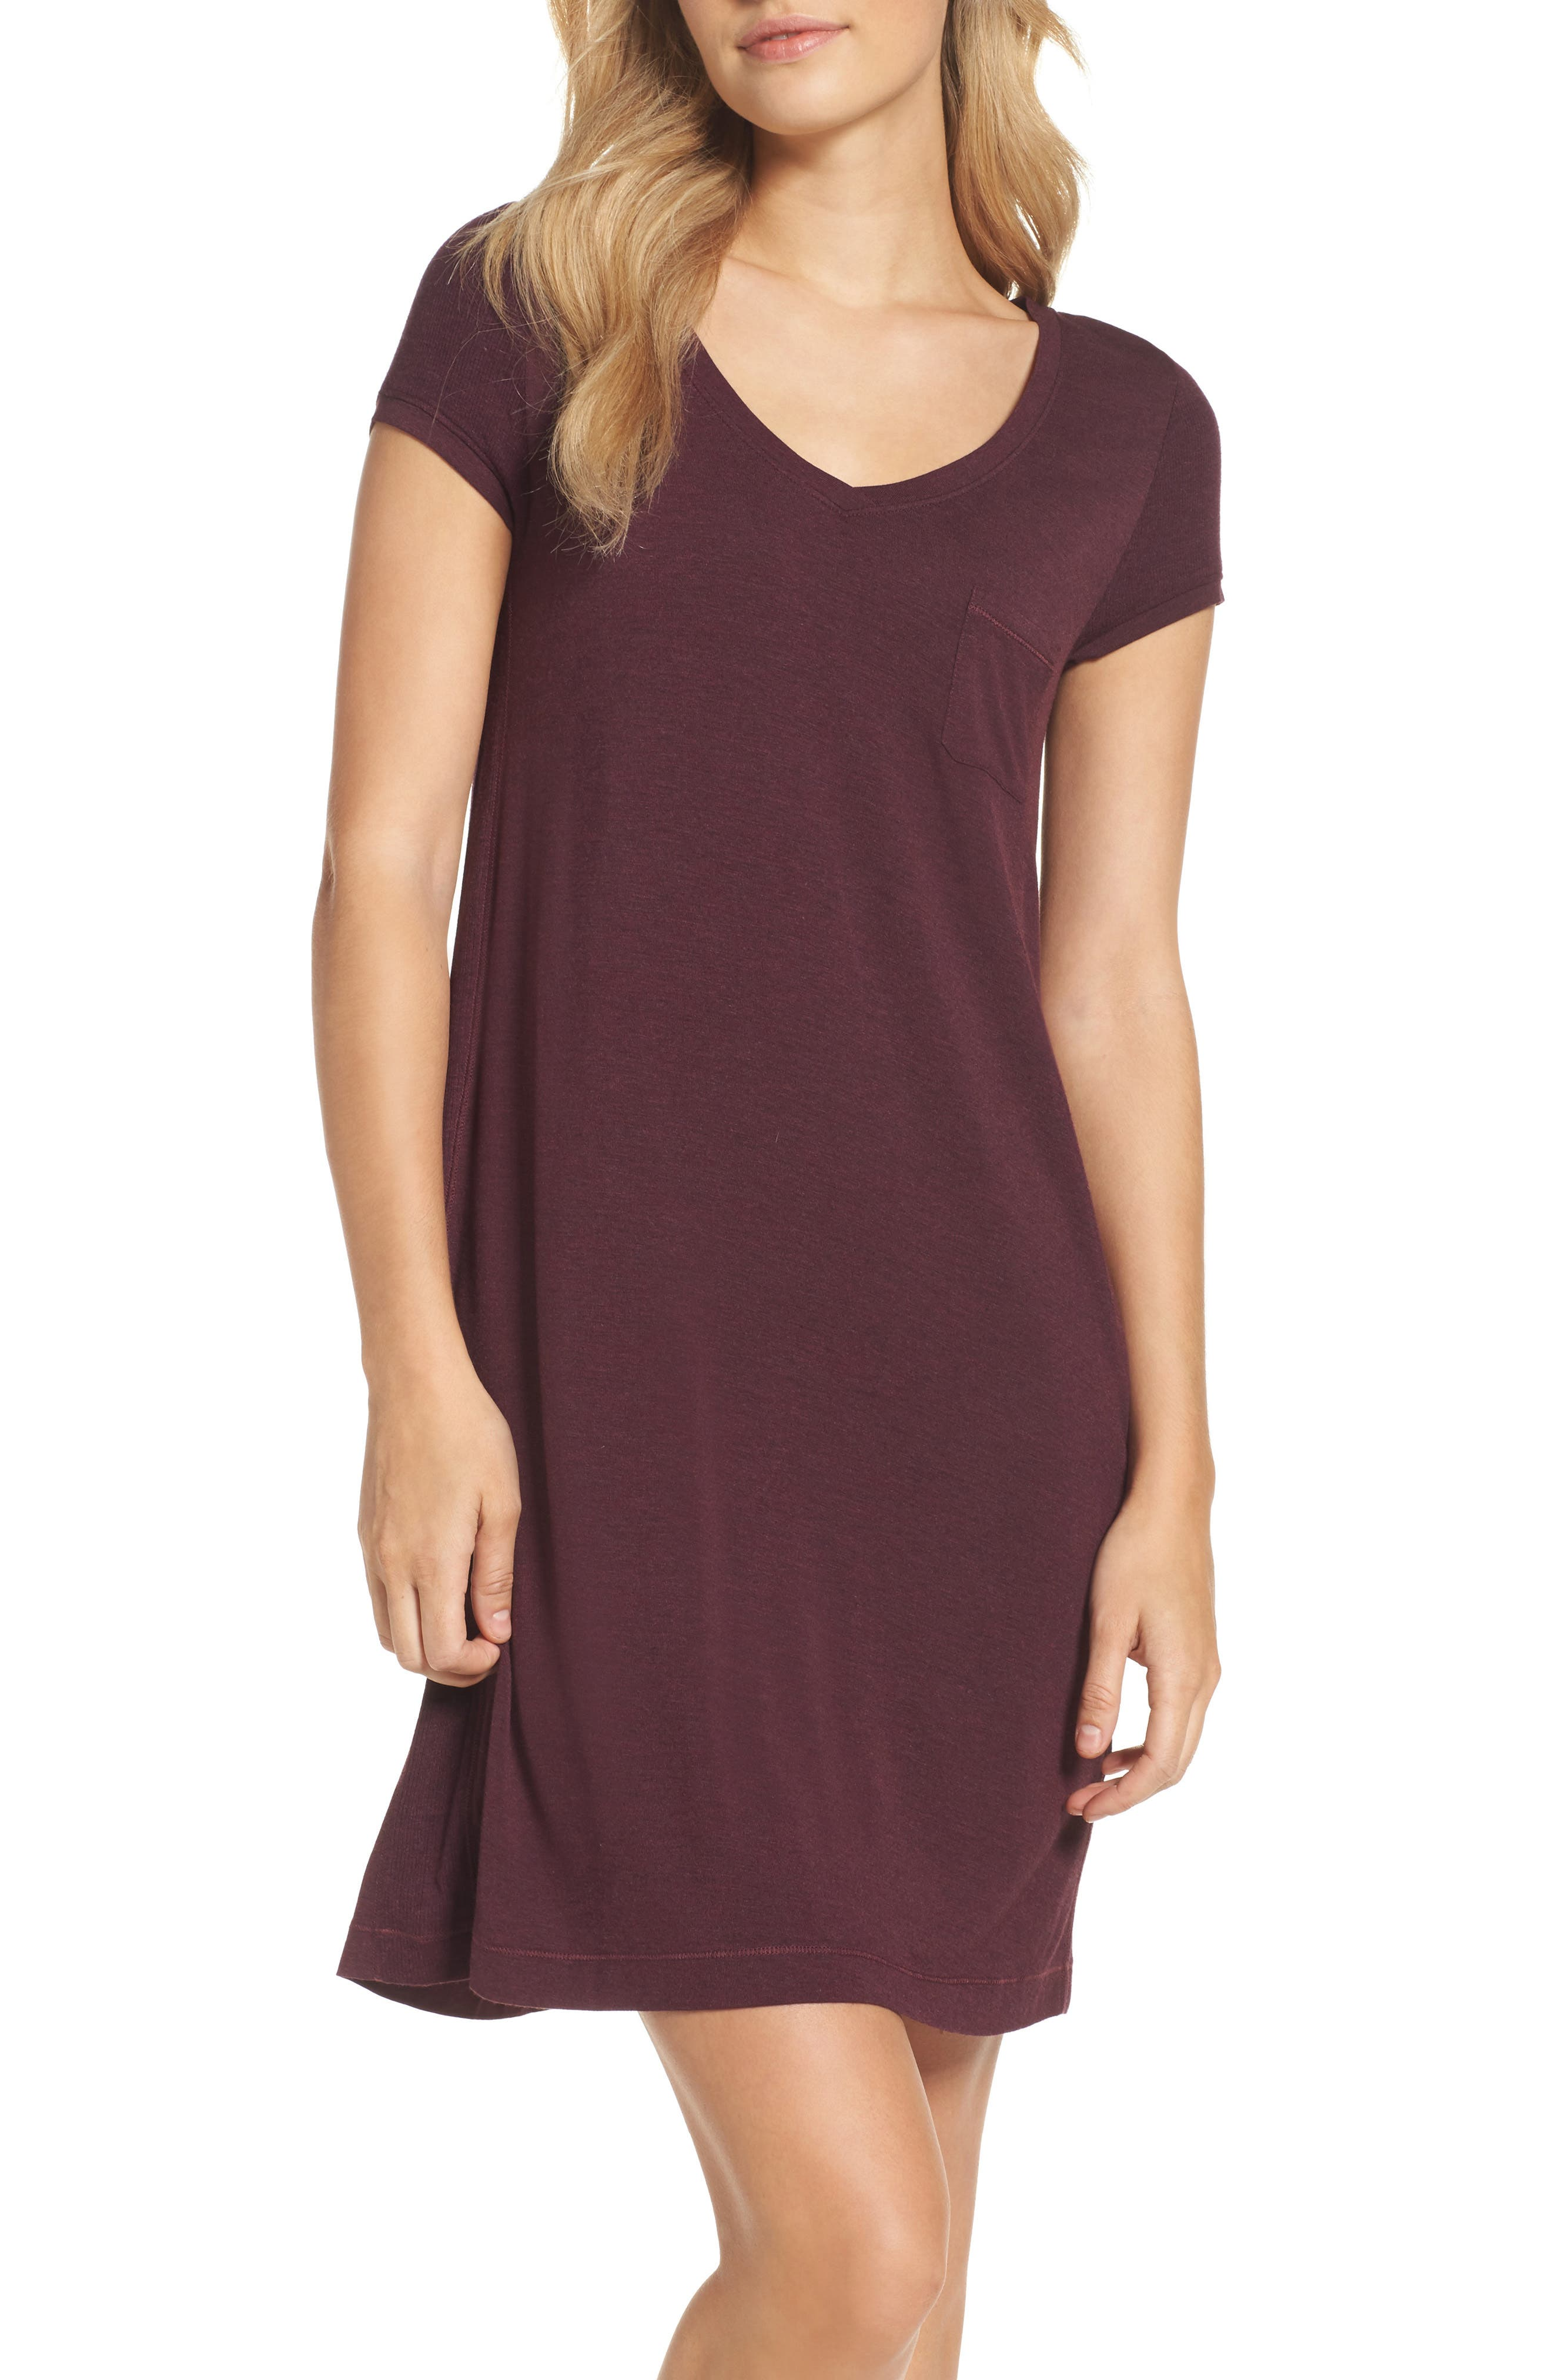 Jersey Nightgown,                             Main thumbnail 1, color,                             Burgundy